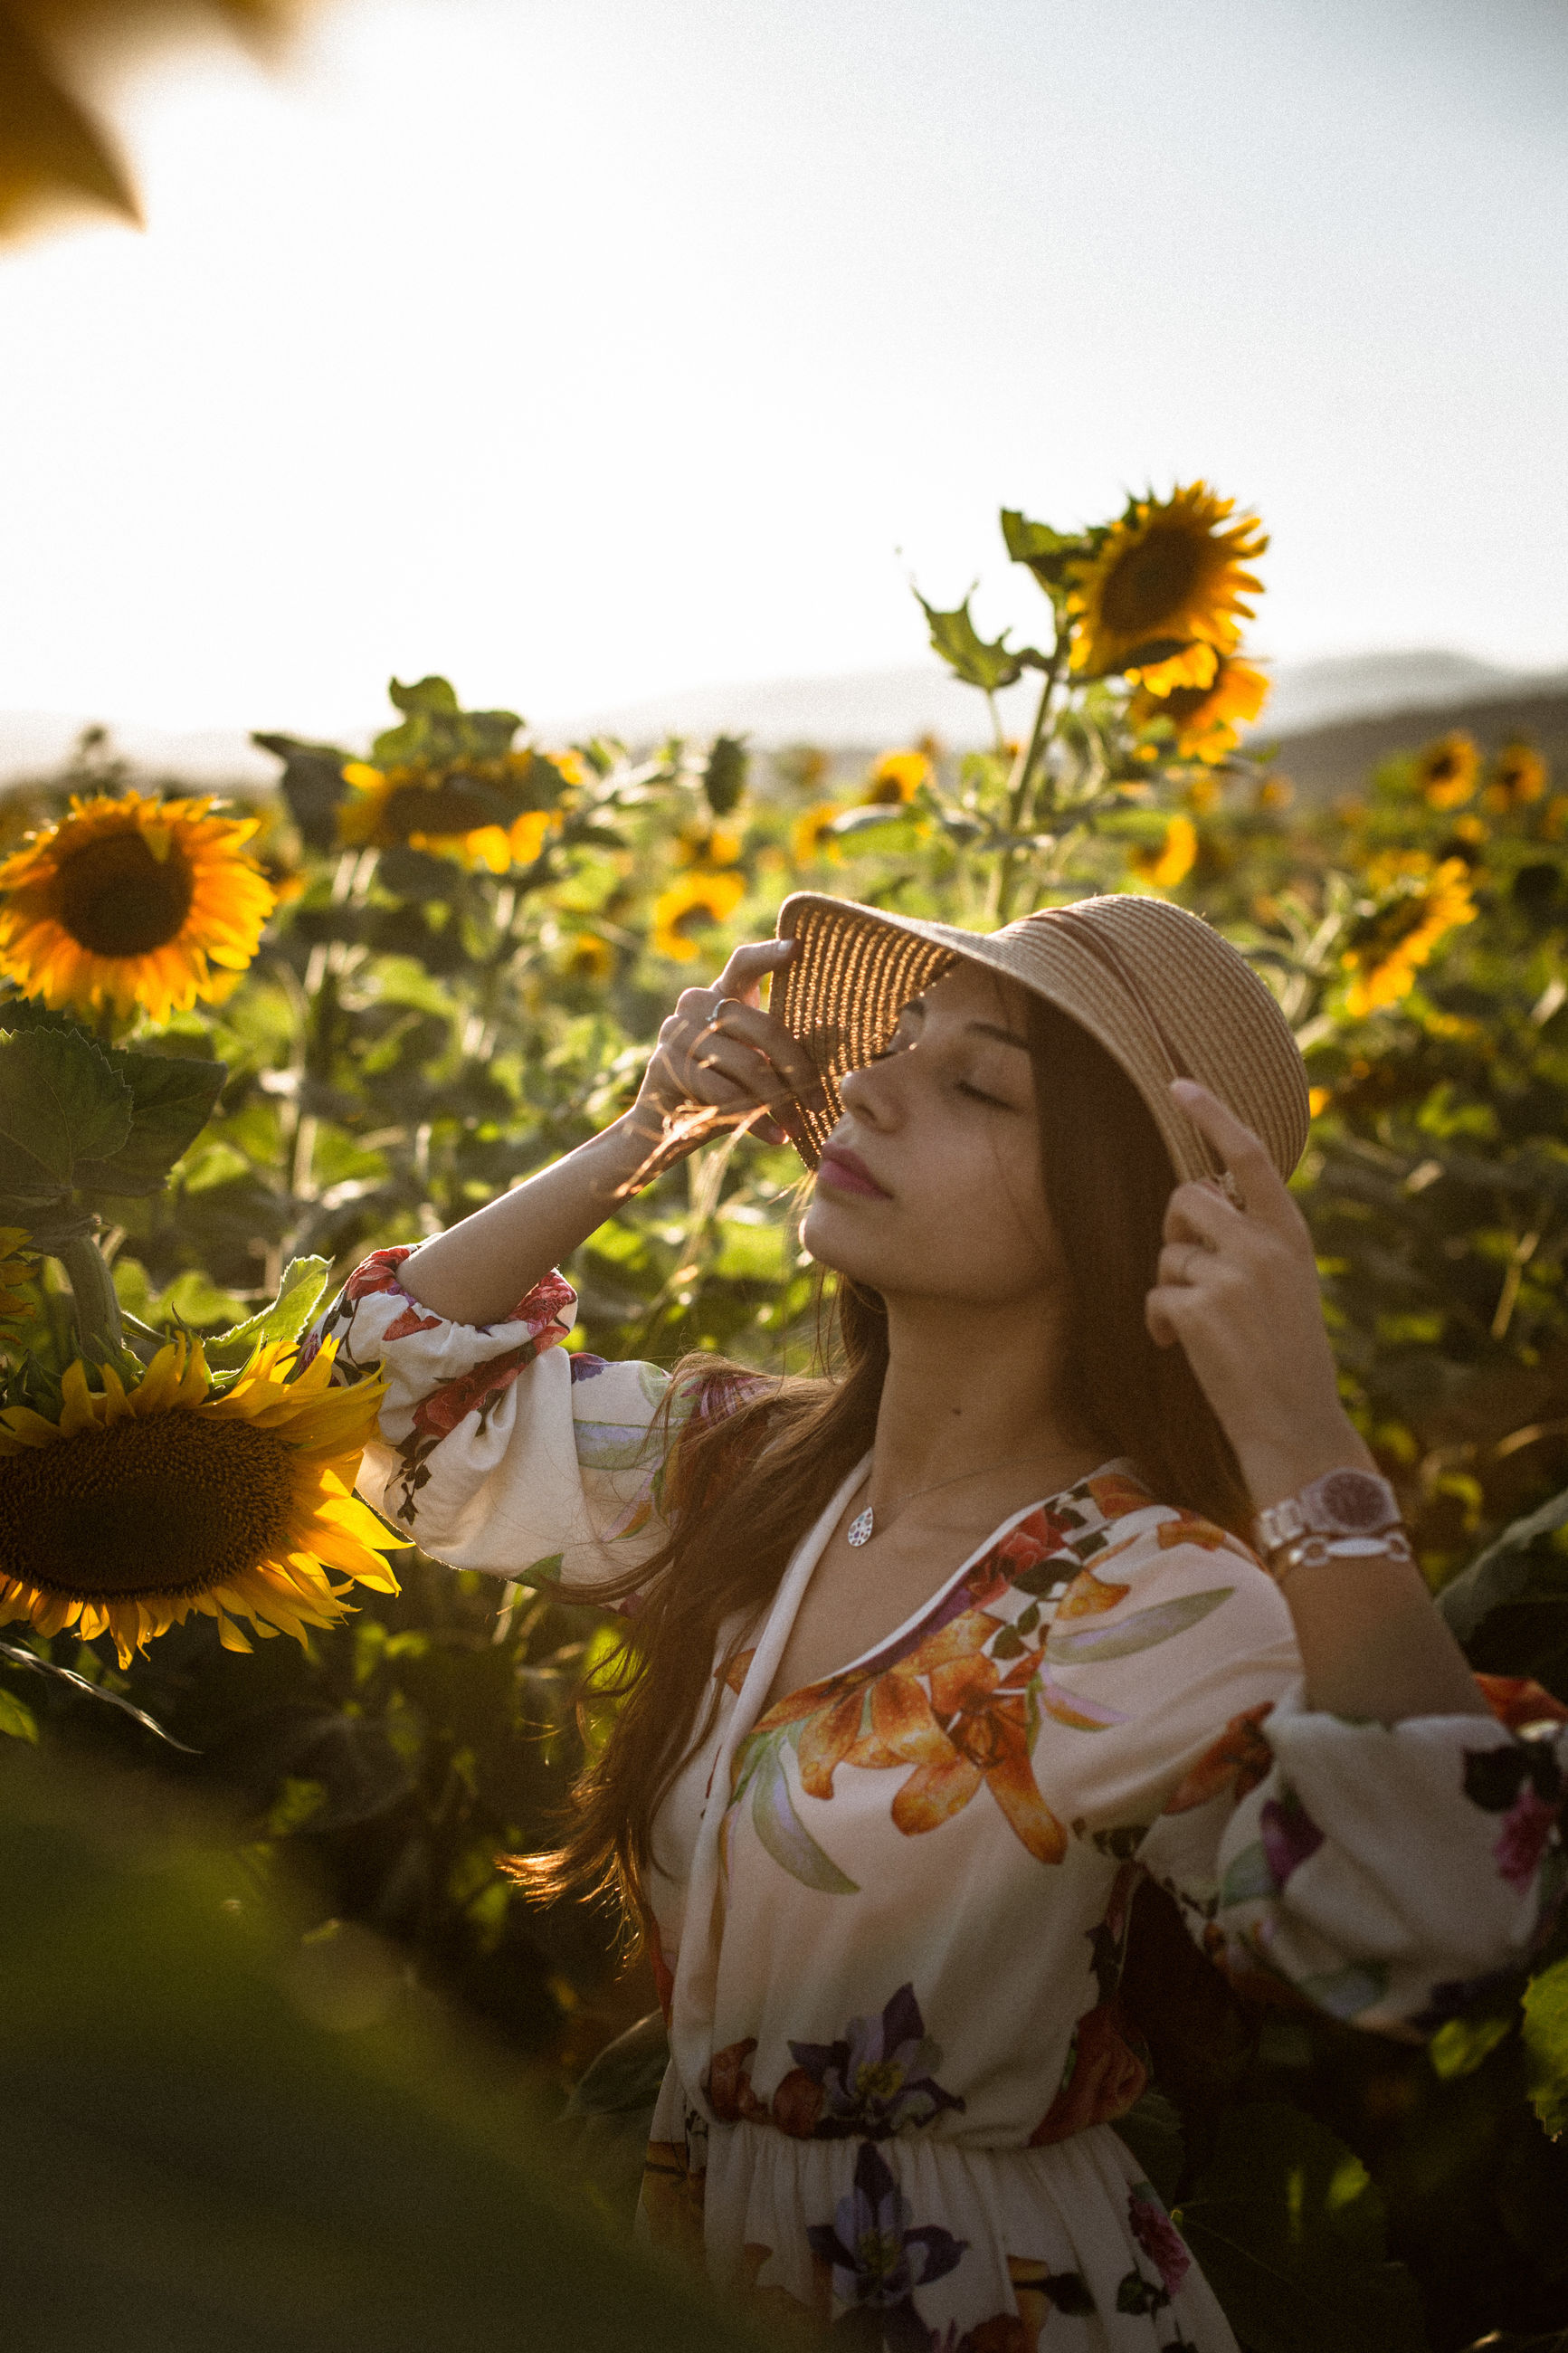 Young woman with eyes closed wearing hat standing amidst sunflowers